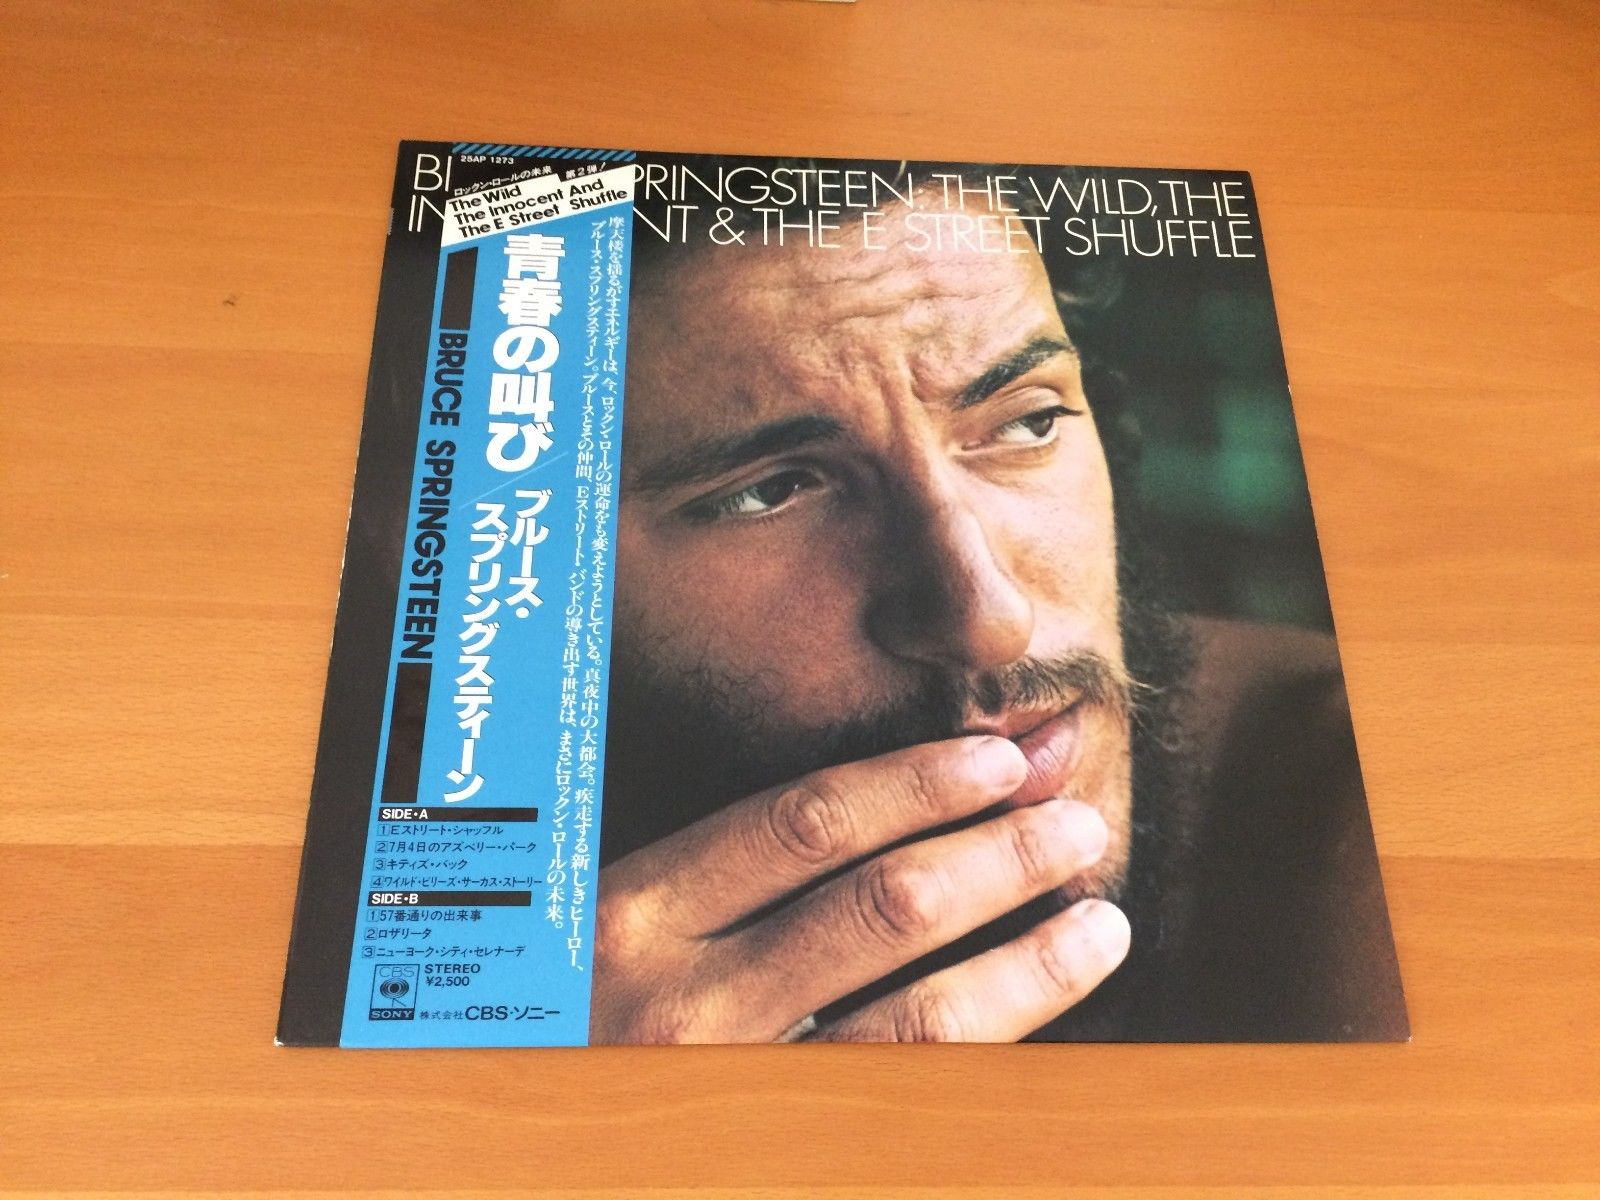 LP BRUCE SPRINGSTEEN THE WILD THE INNOCENT & THE E STREET SHUFFLE JAPAN OBI